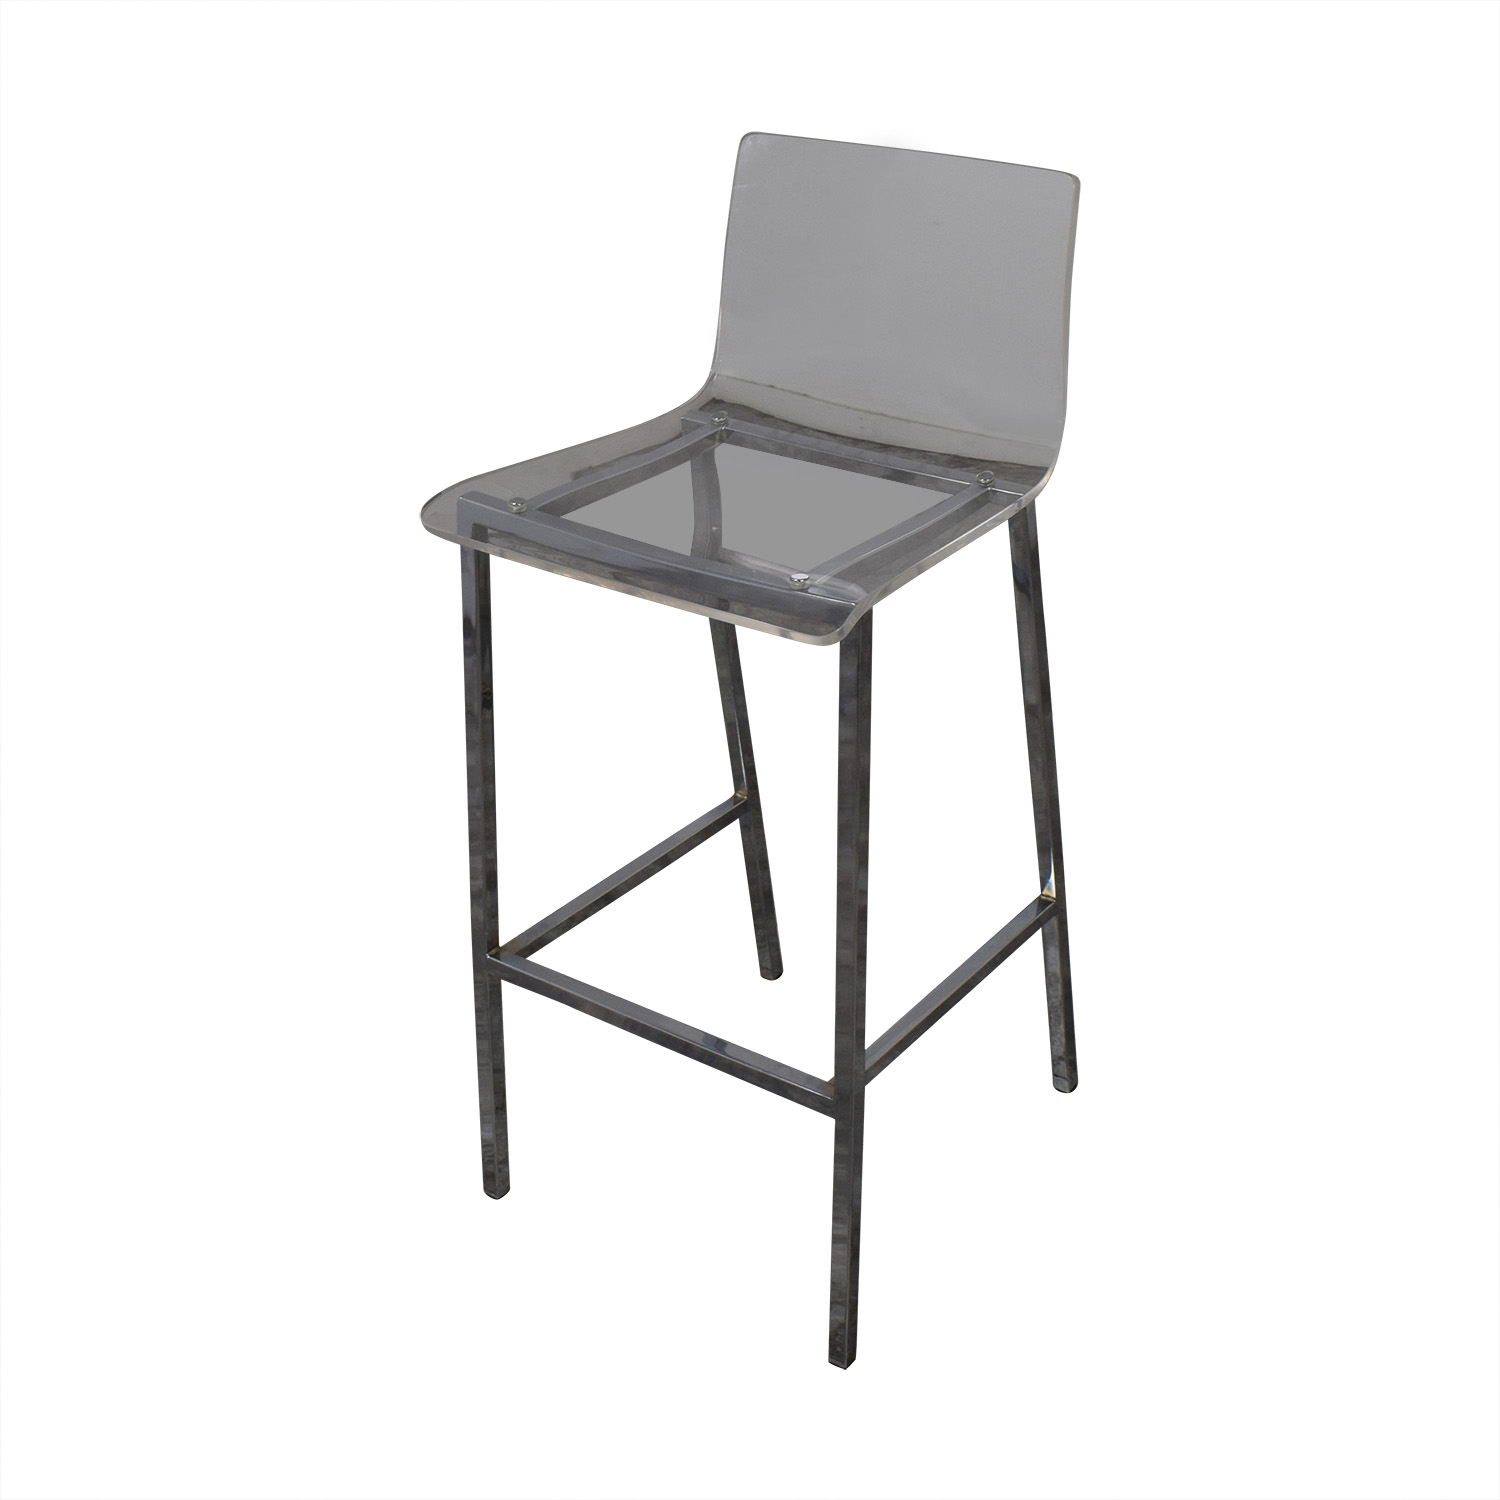 shop CB2 Bar Stools CB2 Stools